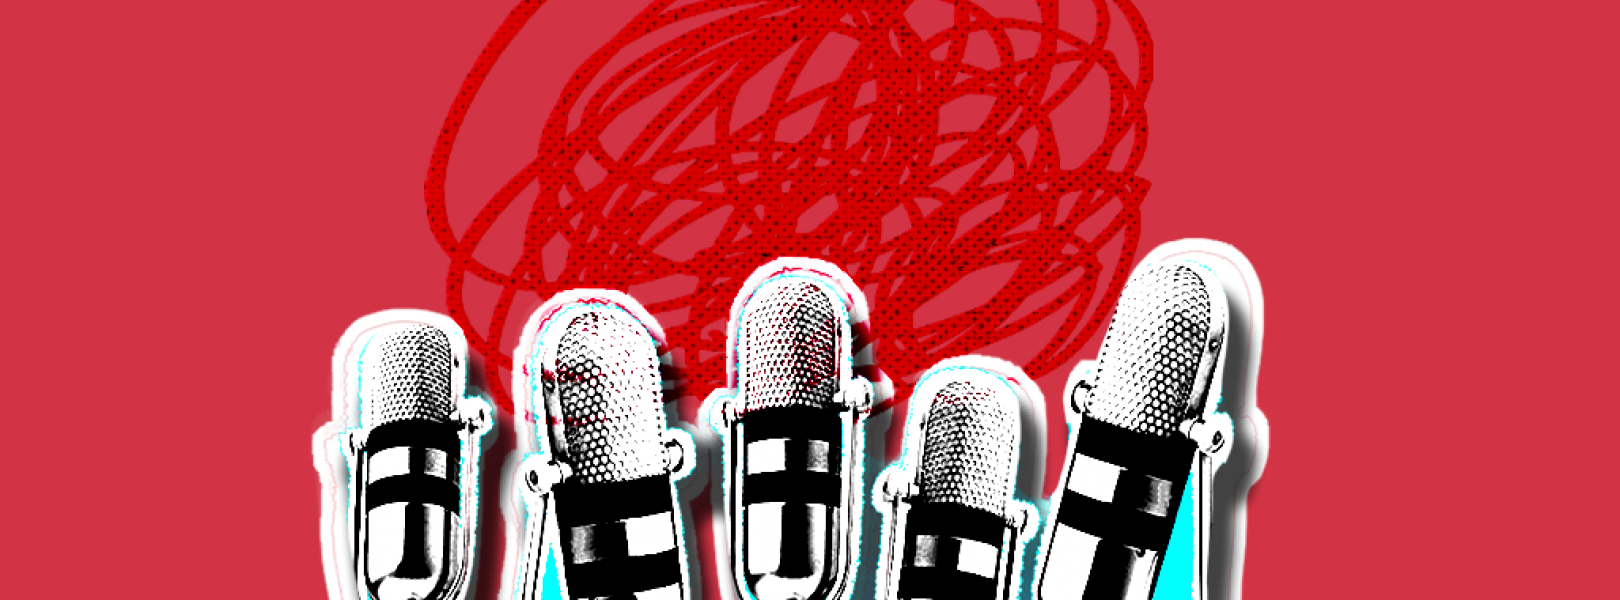 Microphones on a red baackground